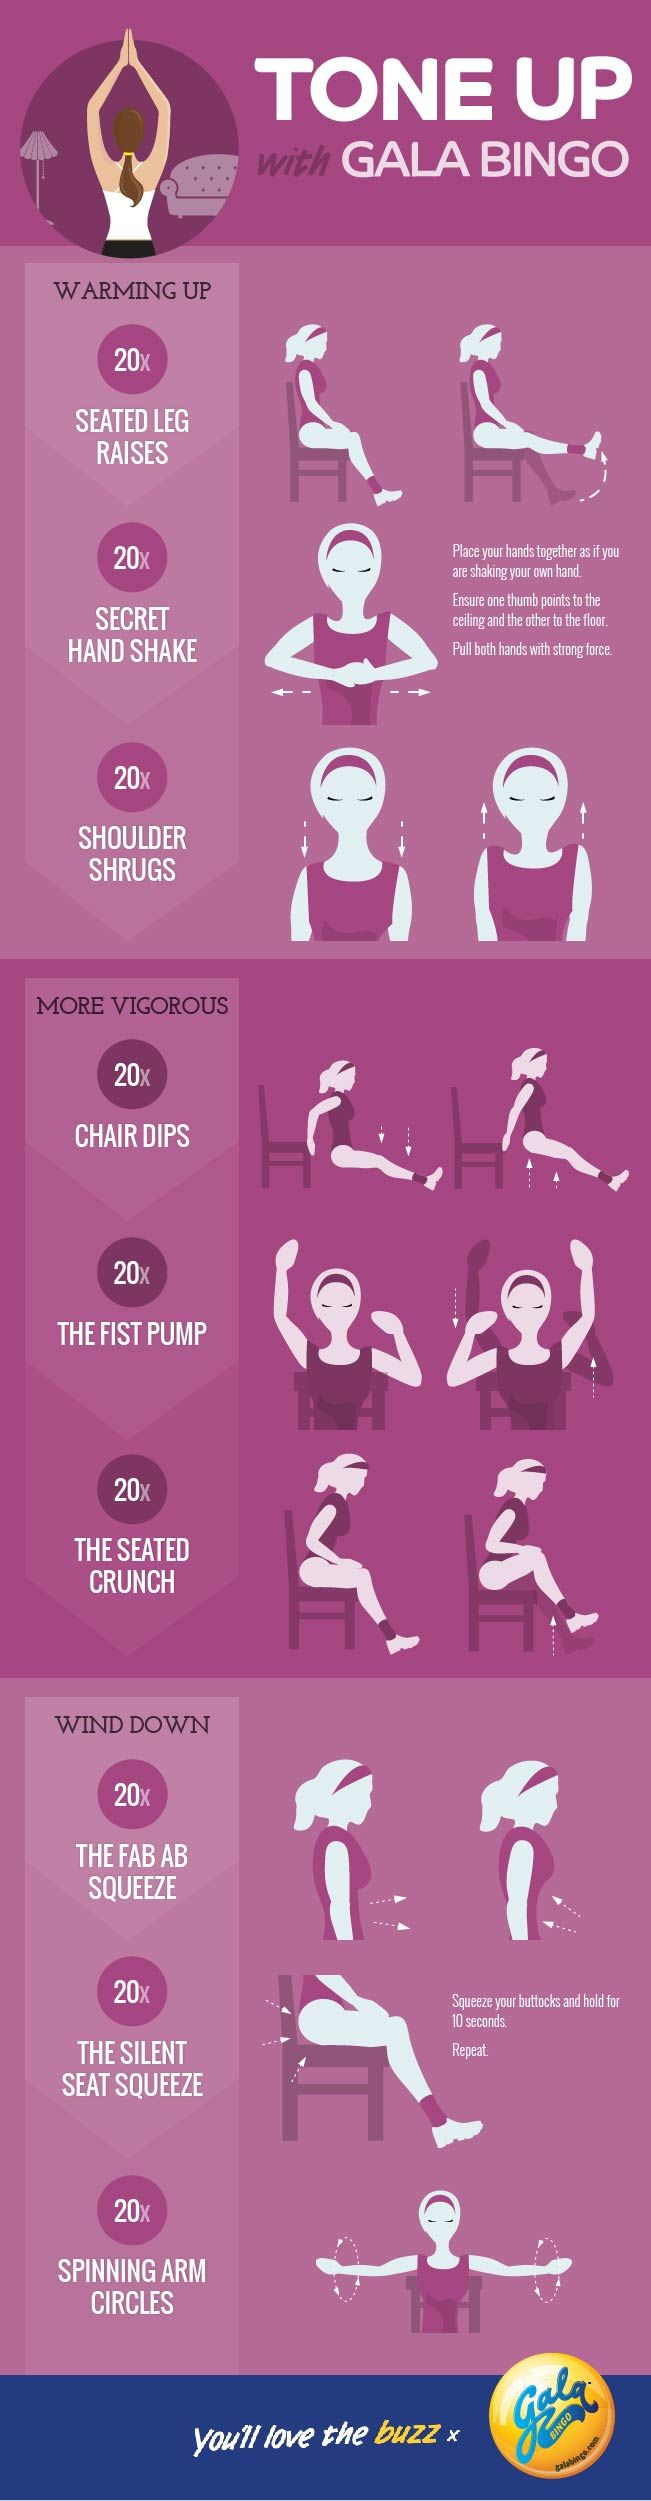 Tone Up With Gala Bingo Workout